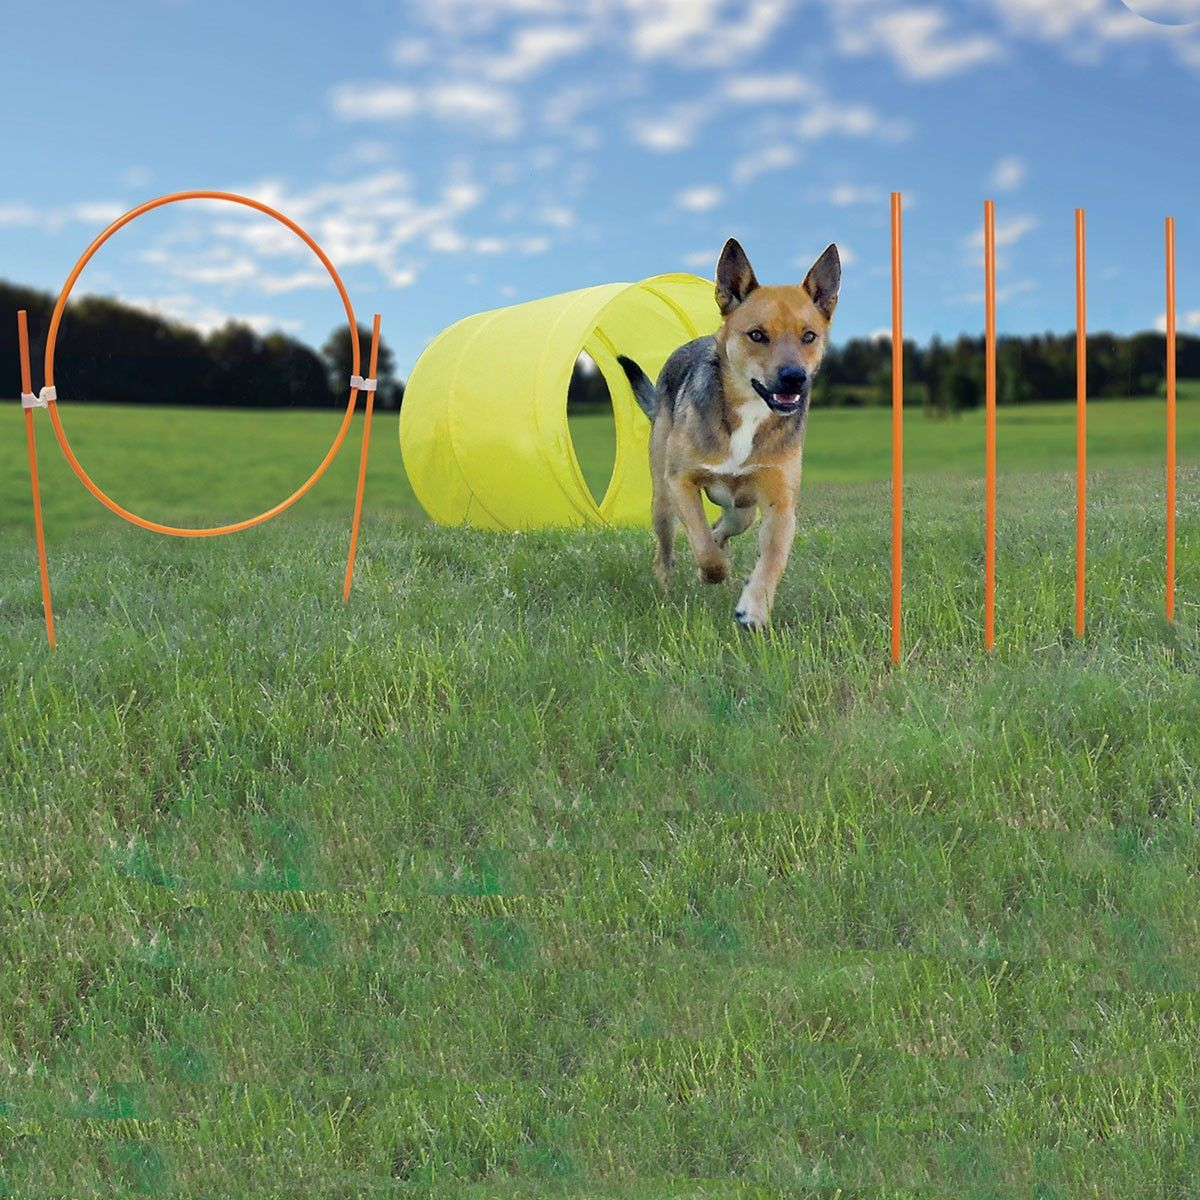 Ready to get your pet started with agility training? This is the perfect kit to get started! This kit features a convenient travel bag, six 18-inch weave poles, a hoop jump and a tunnel. Features - In